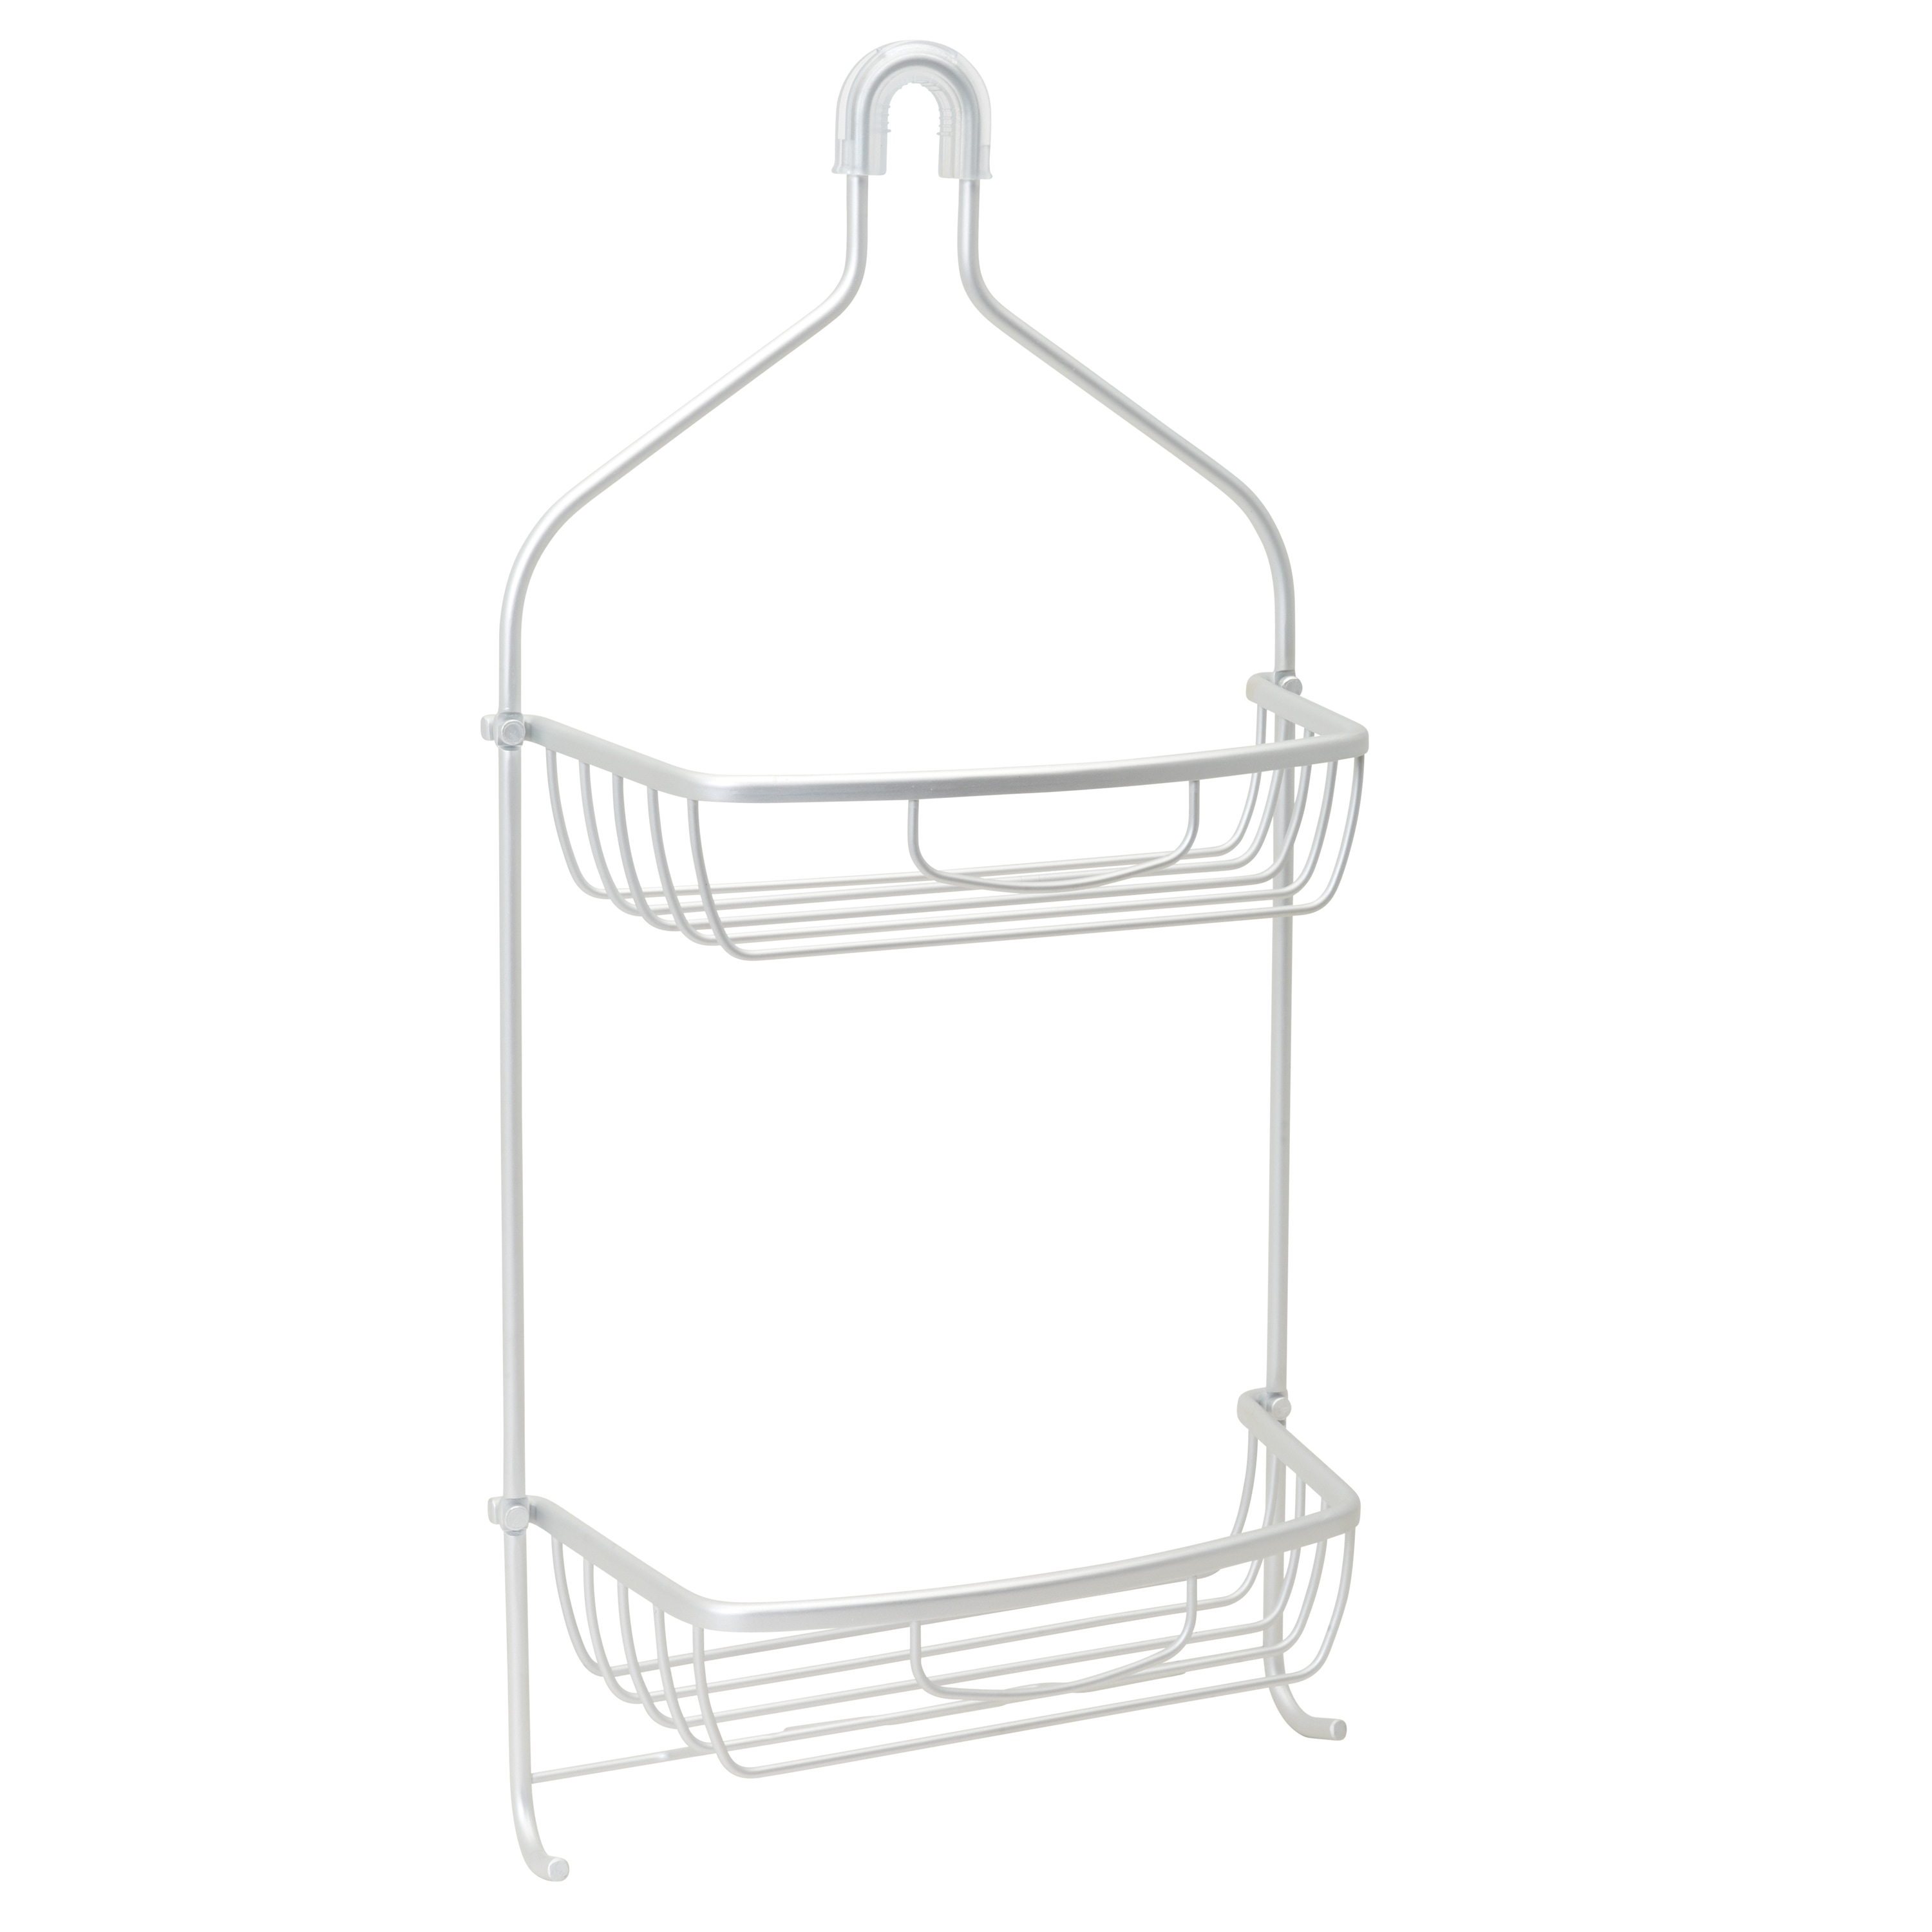 Over The Shower Caddy Home Garden Compare Prices At Nextag